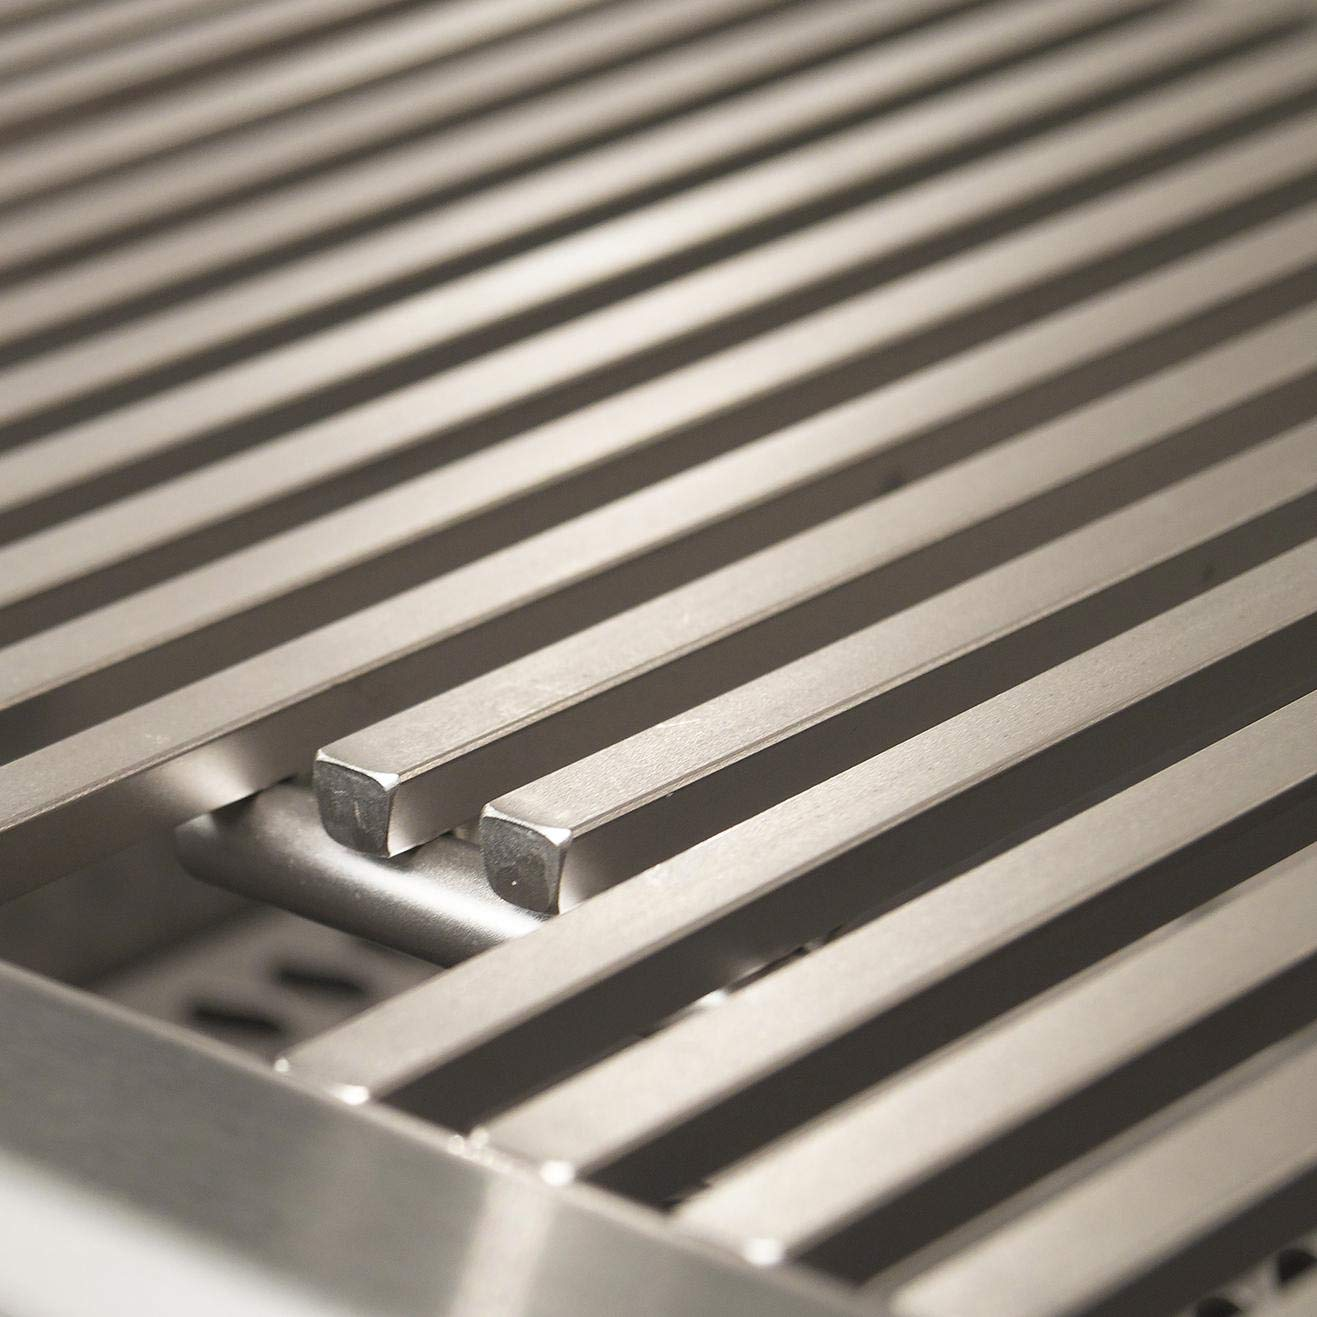 Fire Magic Diamond Sear Stainless Steel Cooking Grids Aurora A660i Gas Grills - Set of 3-23544-DS-3